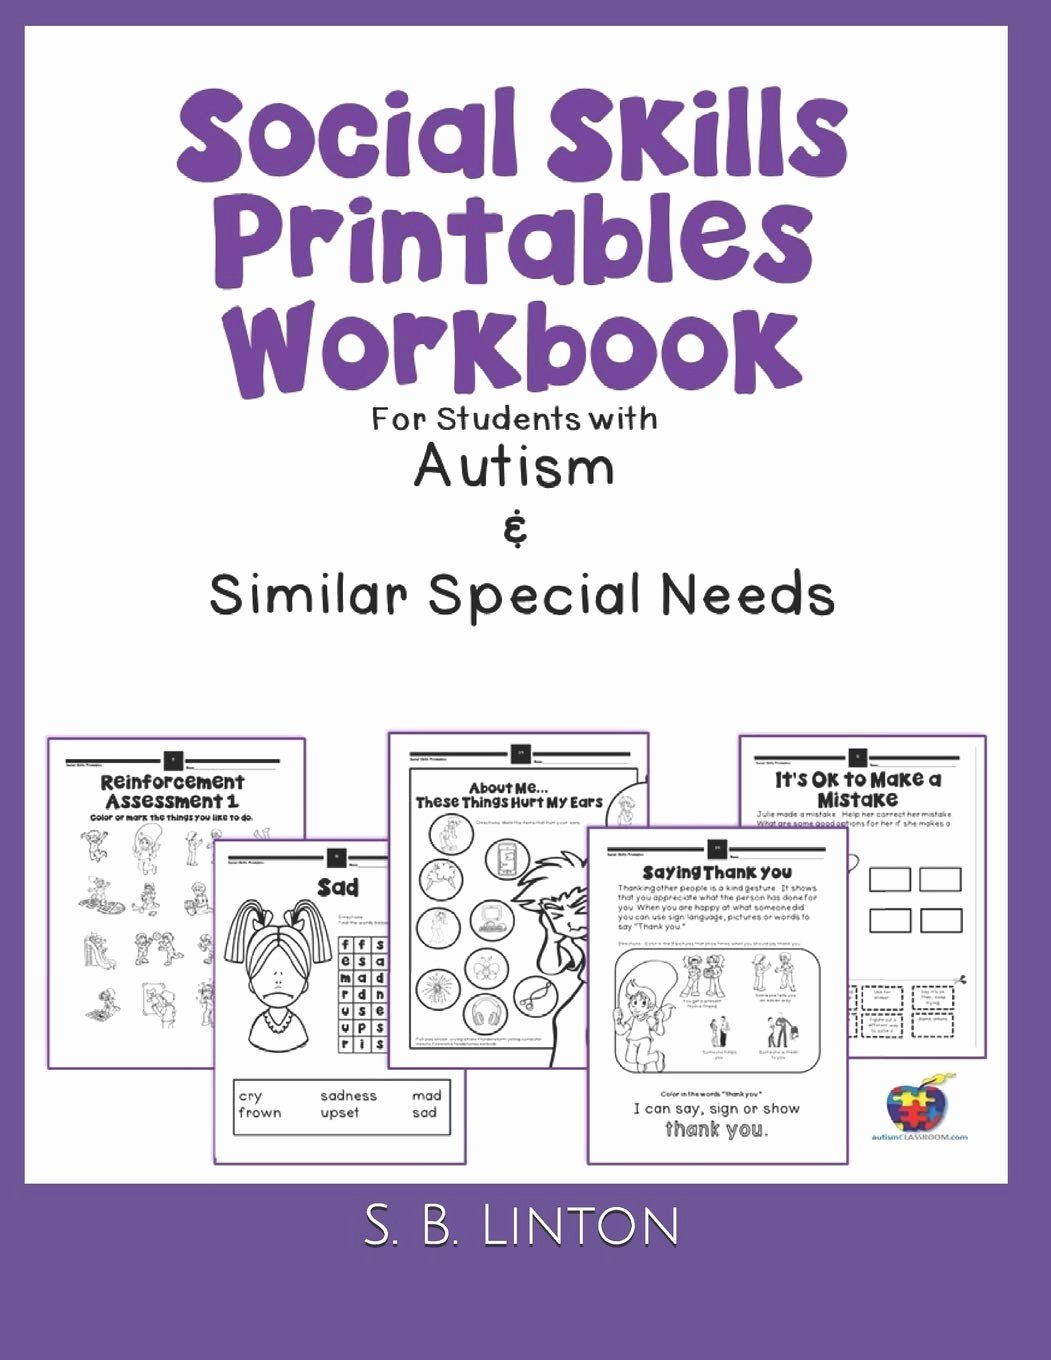 Social Skills Worksheets for Preschoolers Unique social Skills Printables Workbook for Students with Autism